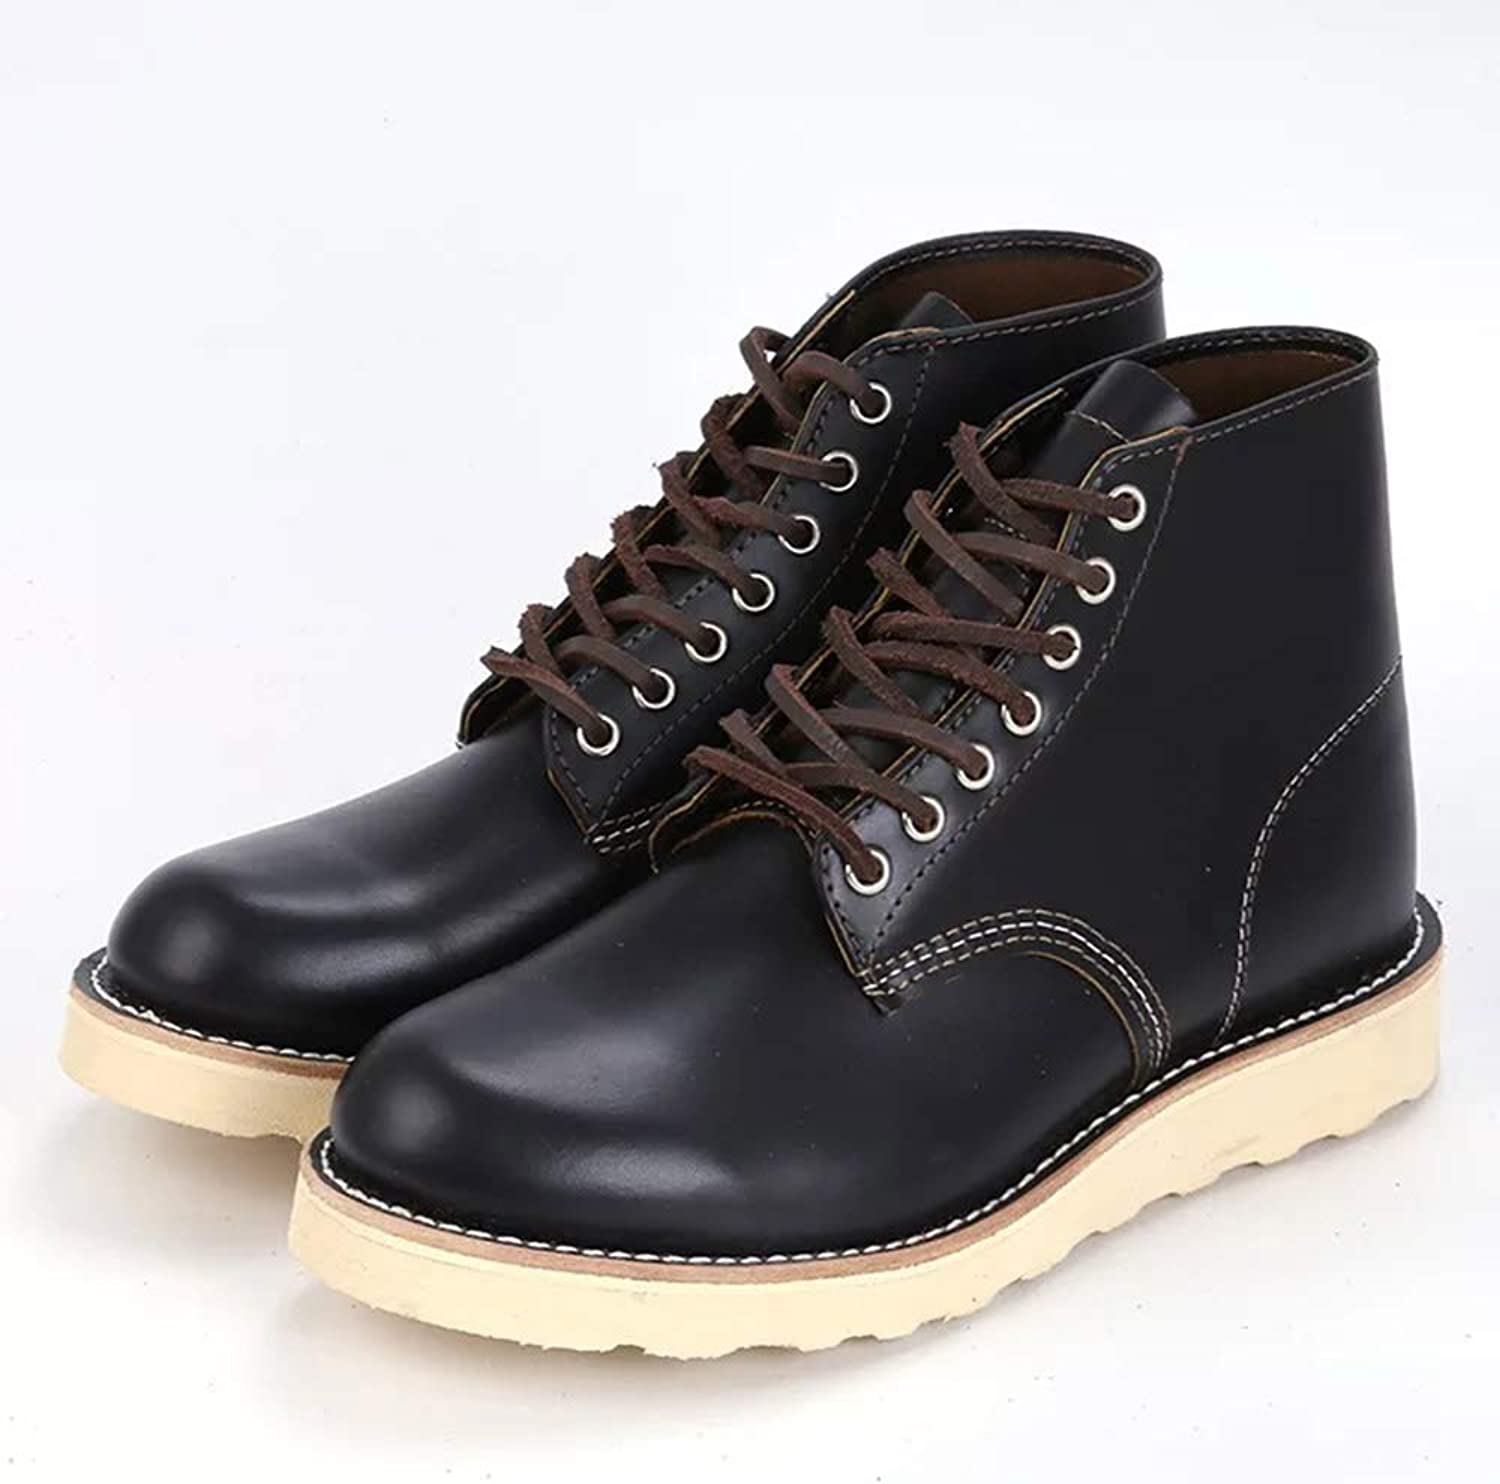 RTX Men's Leather Safety shoes Europen Boot Fashion High Top Black,40